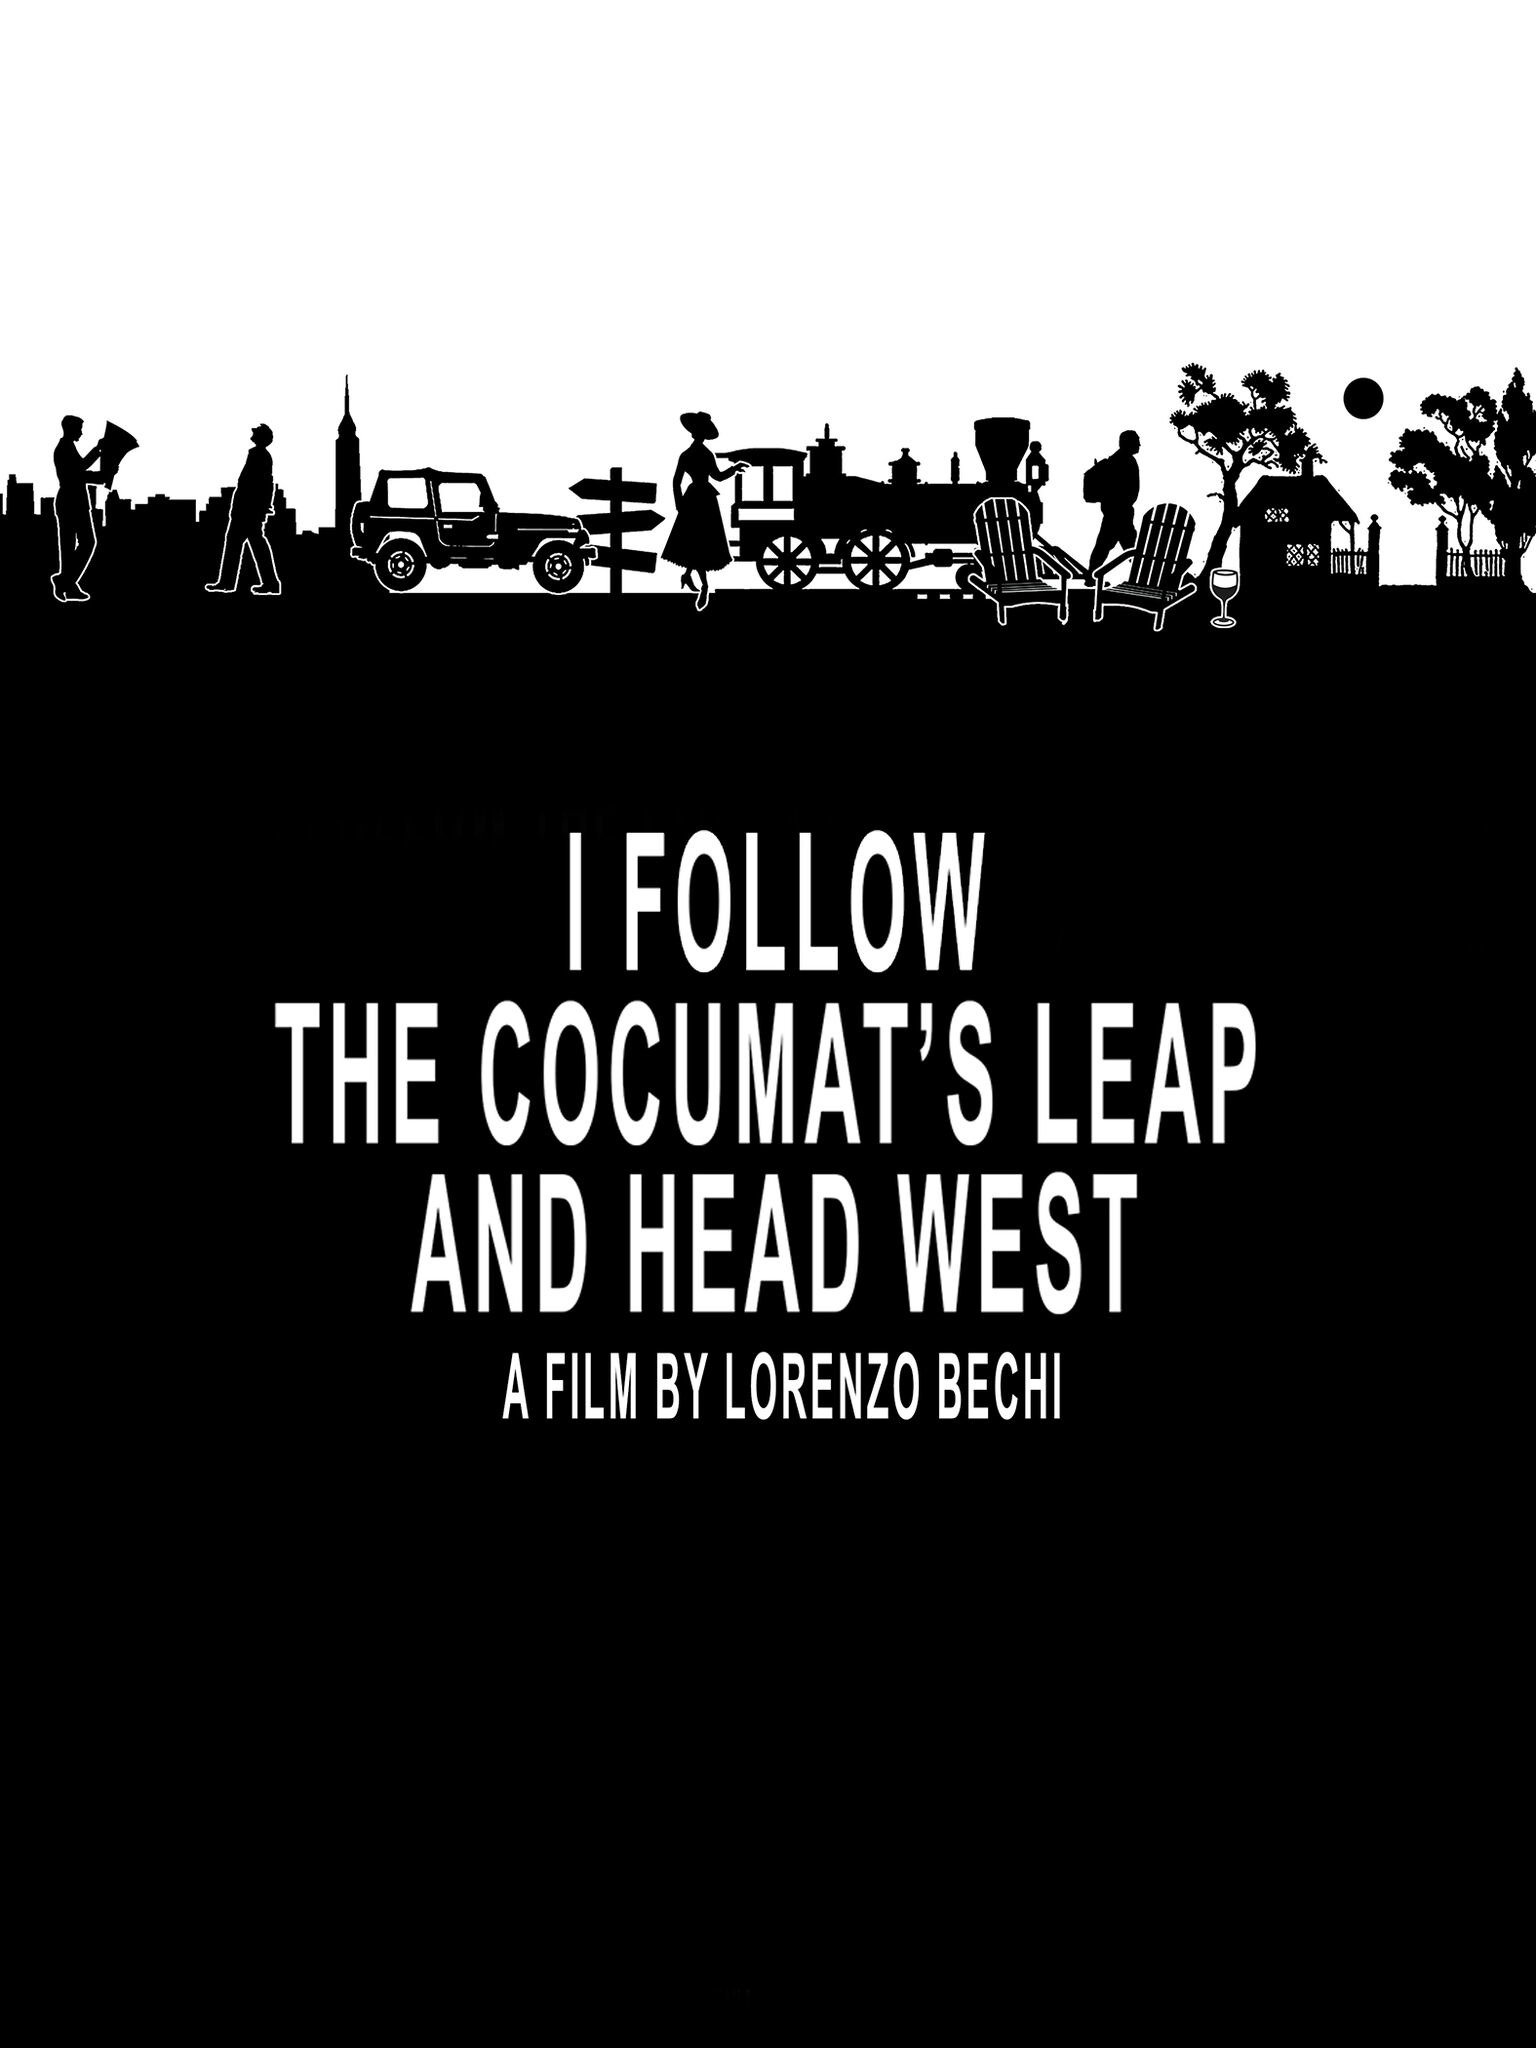 I Follow the Cocumat's Leap and Head West